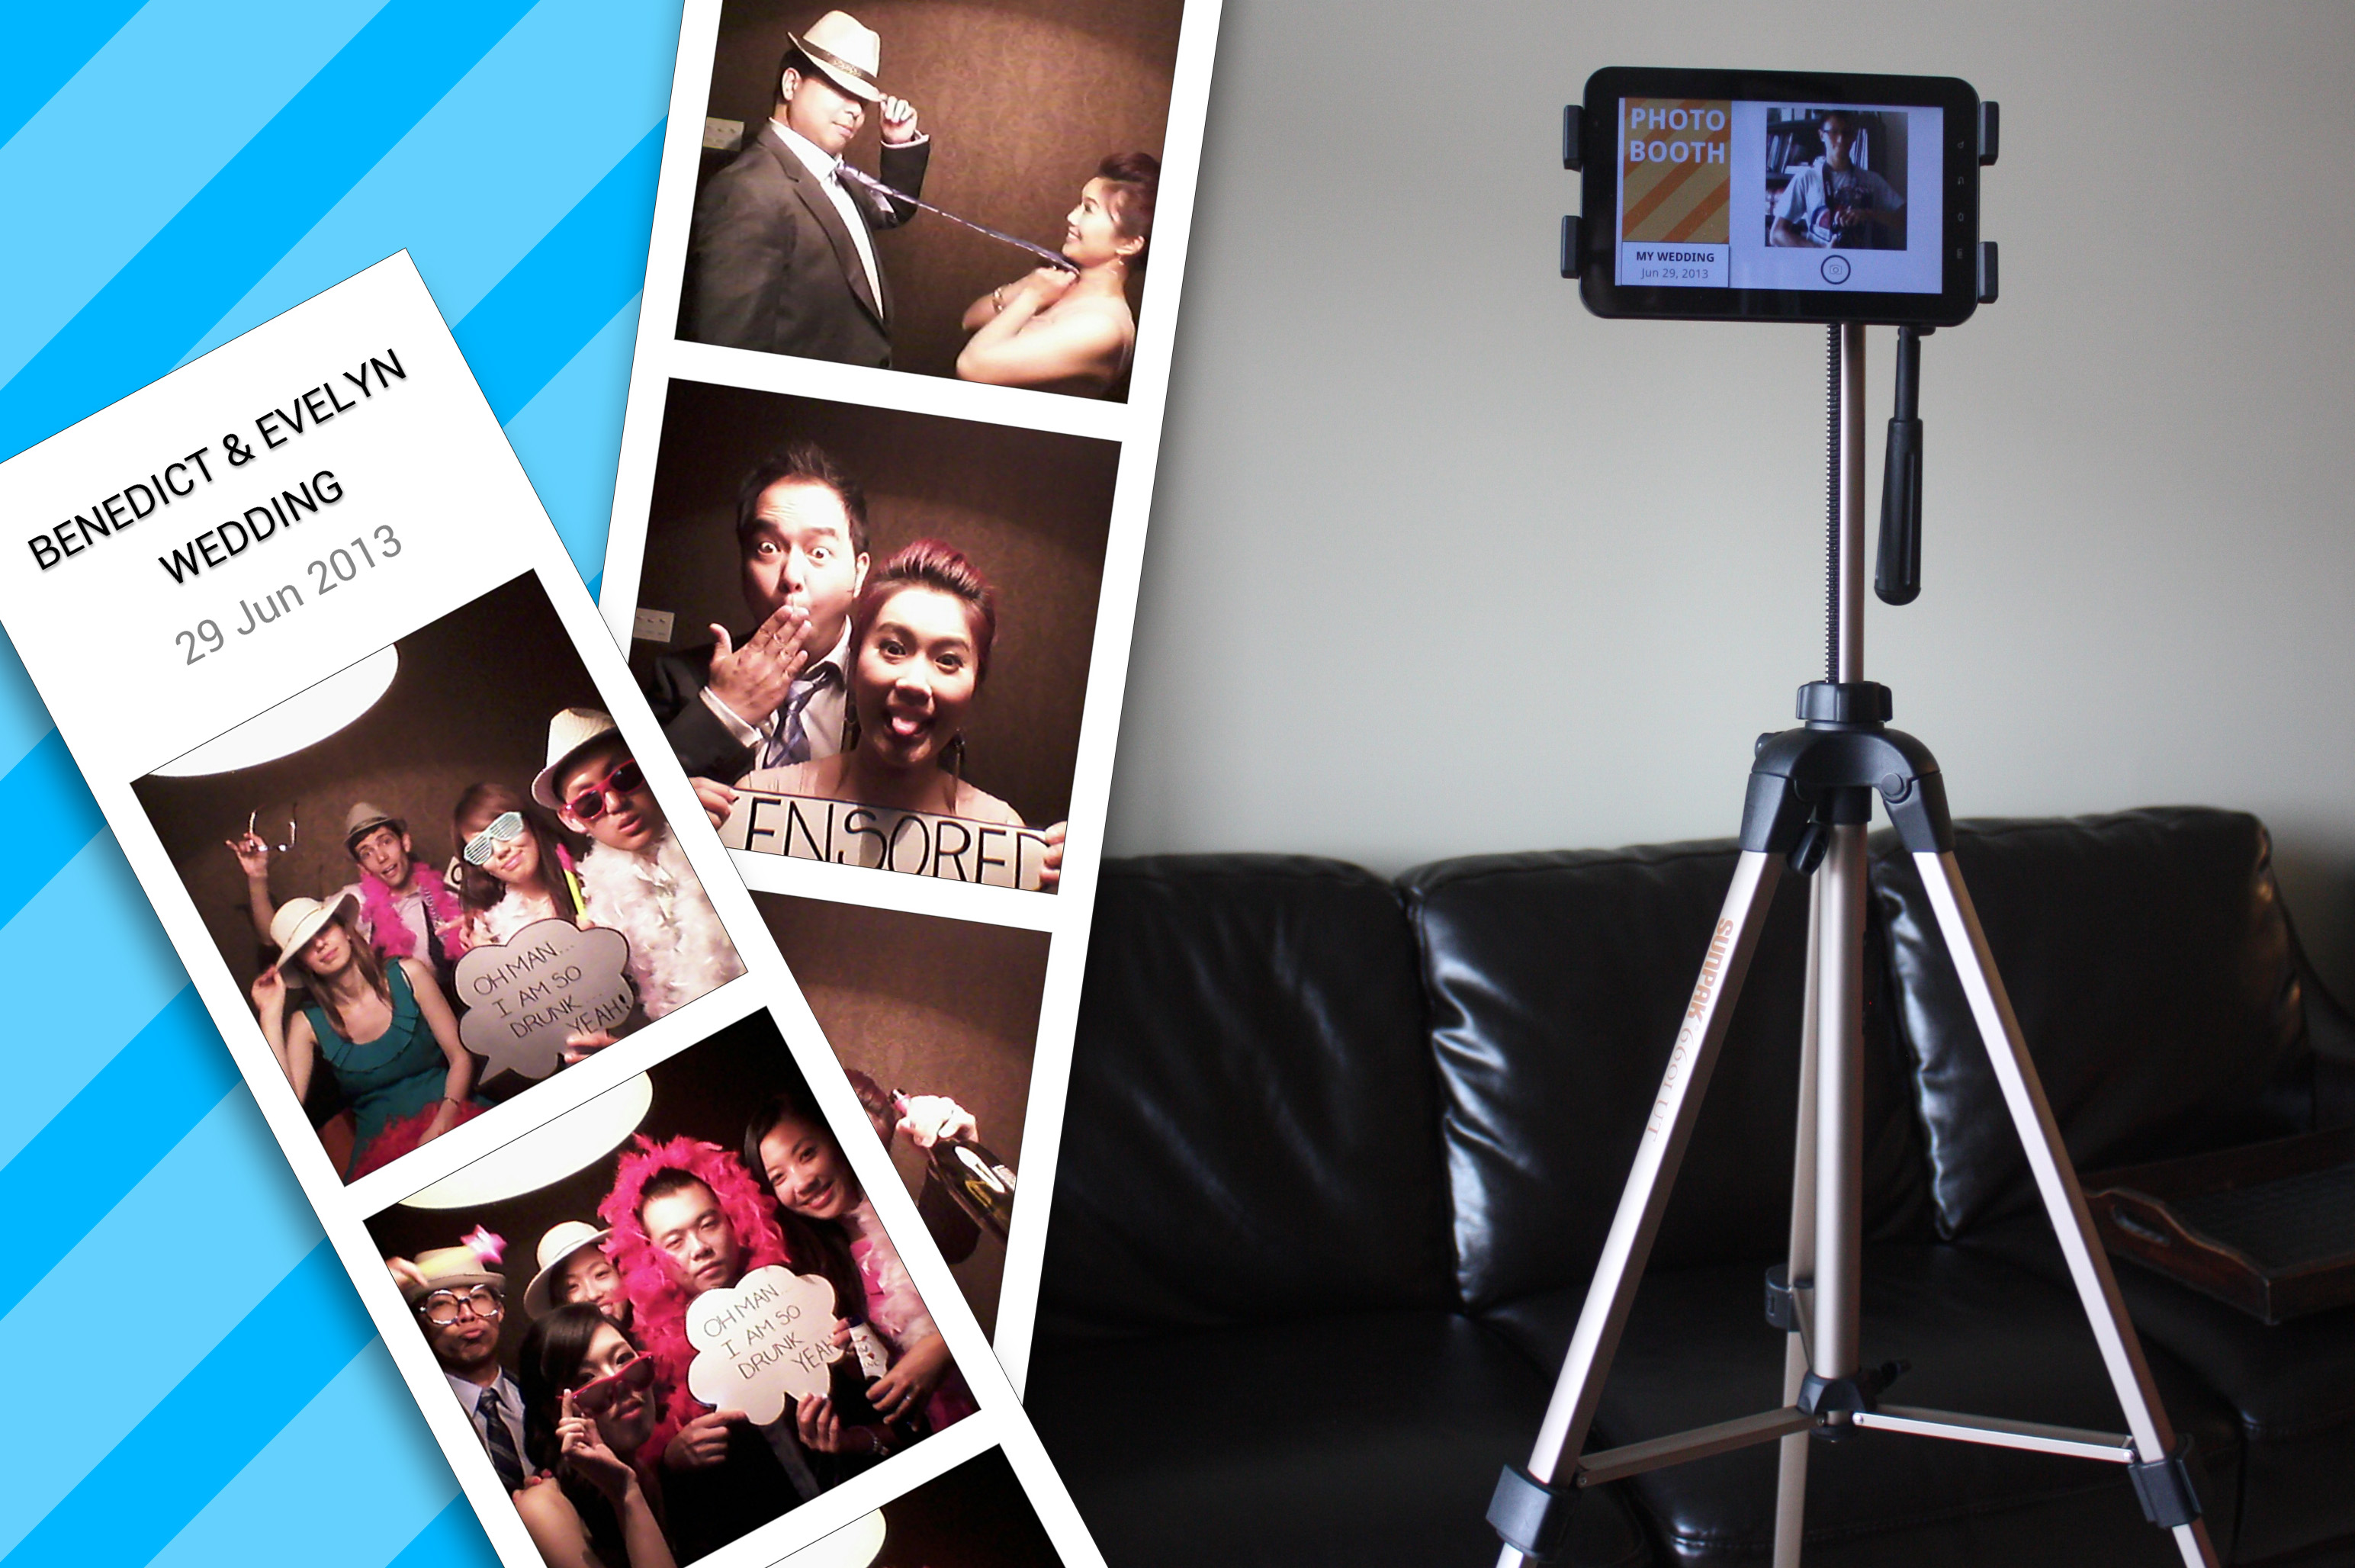 5-minute Photo Booth: 6 Steps (with Pictures)